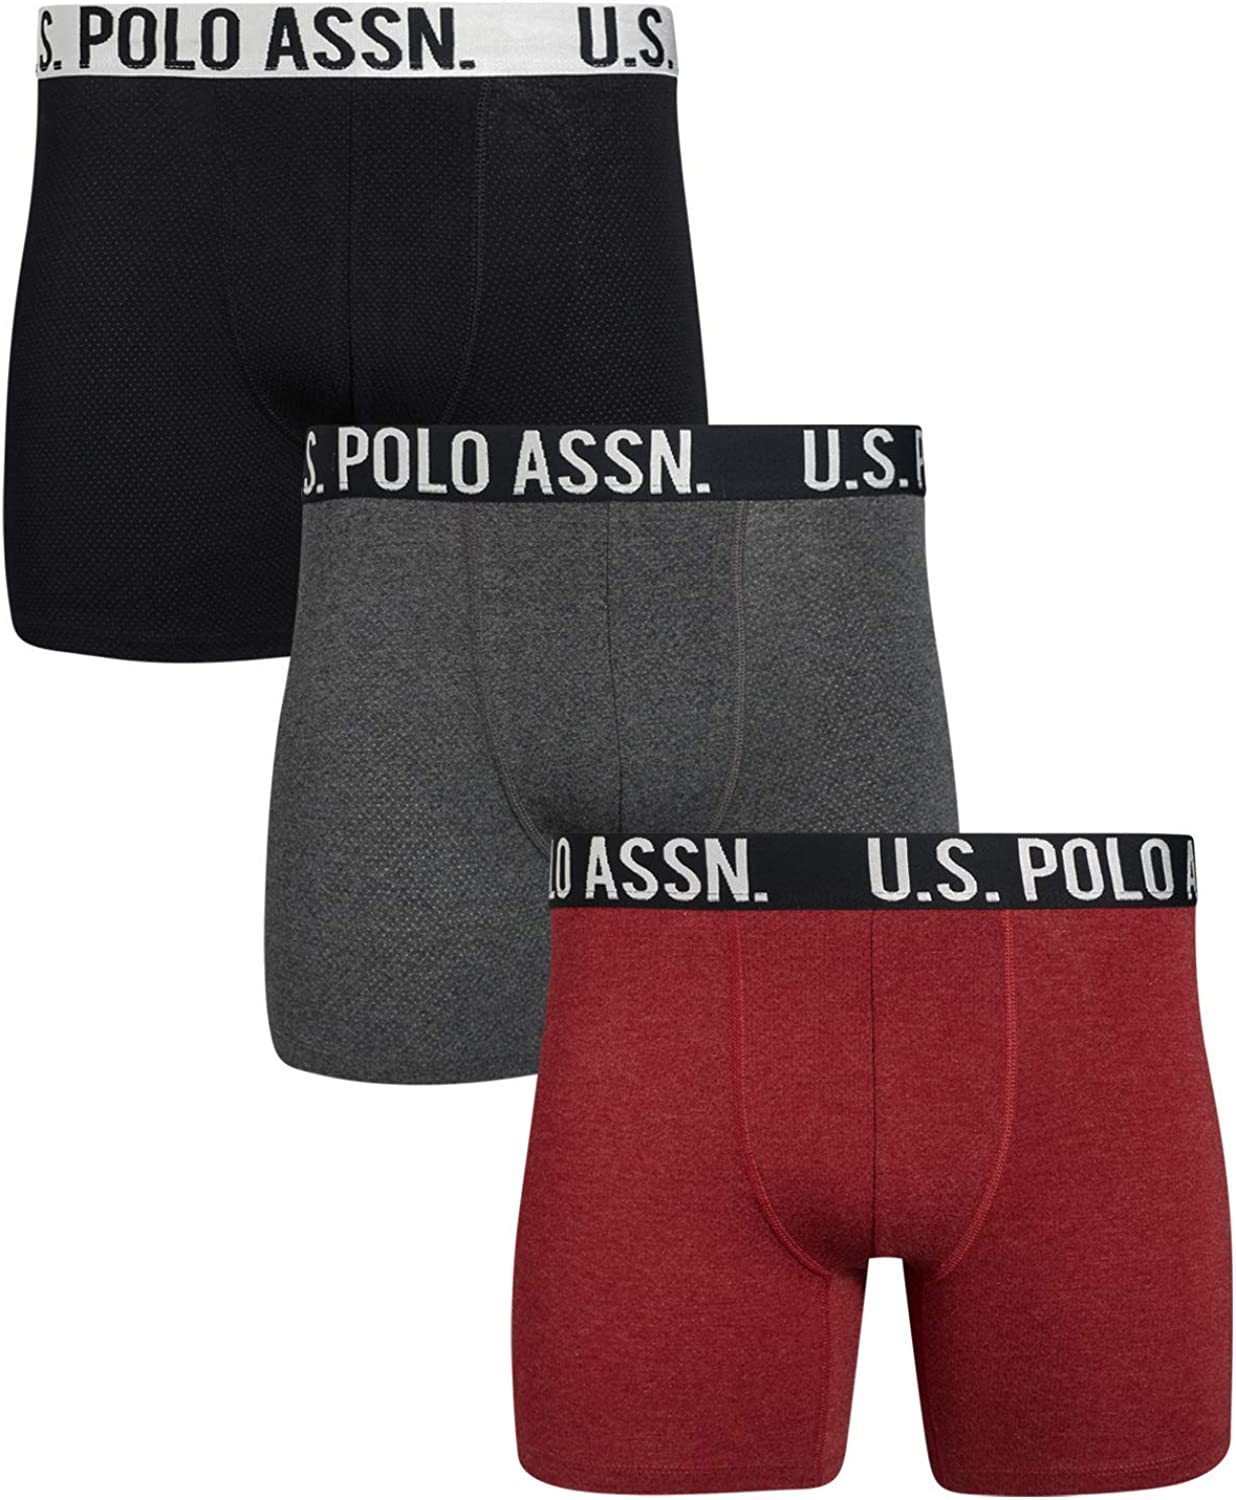 U.S. Polo Assn. Men's Athletic No Fly Mesh Boxer Briefs with Comfort Pouch (3 Pack)